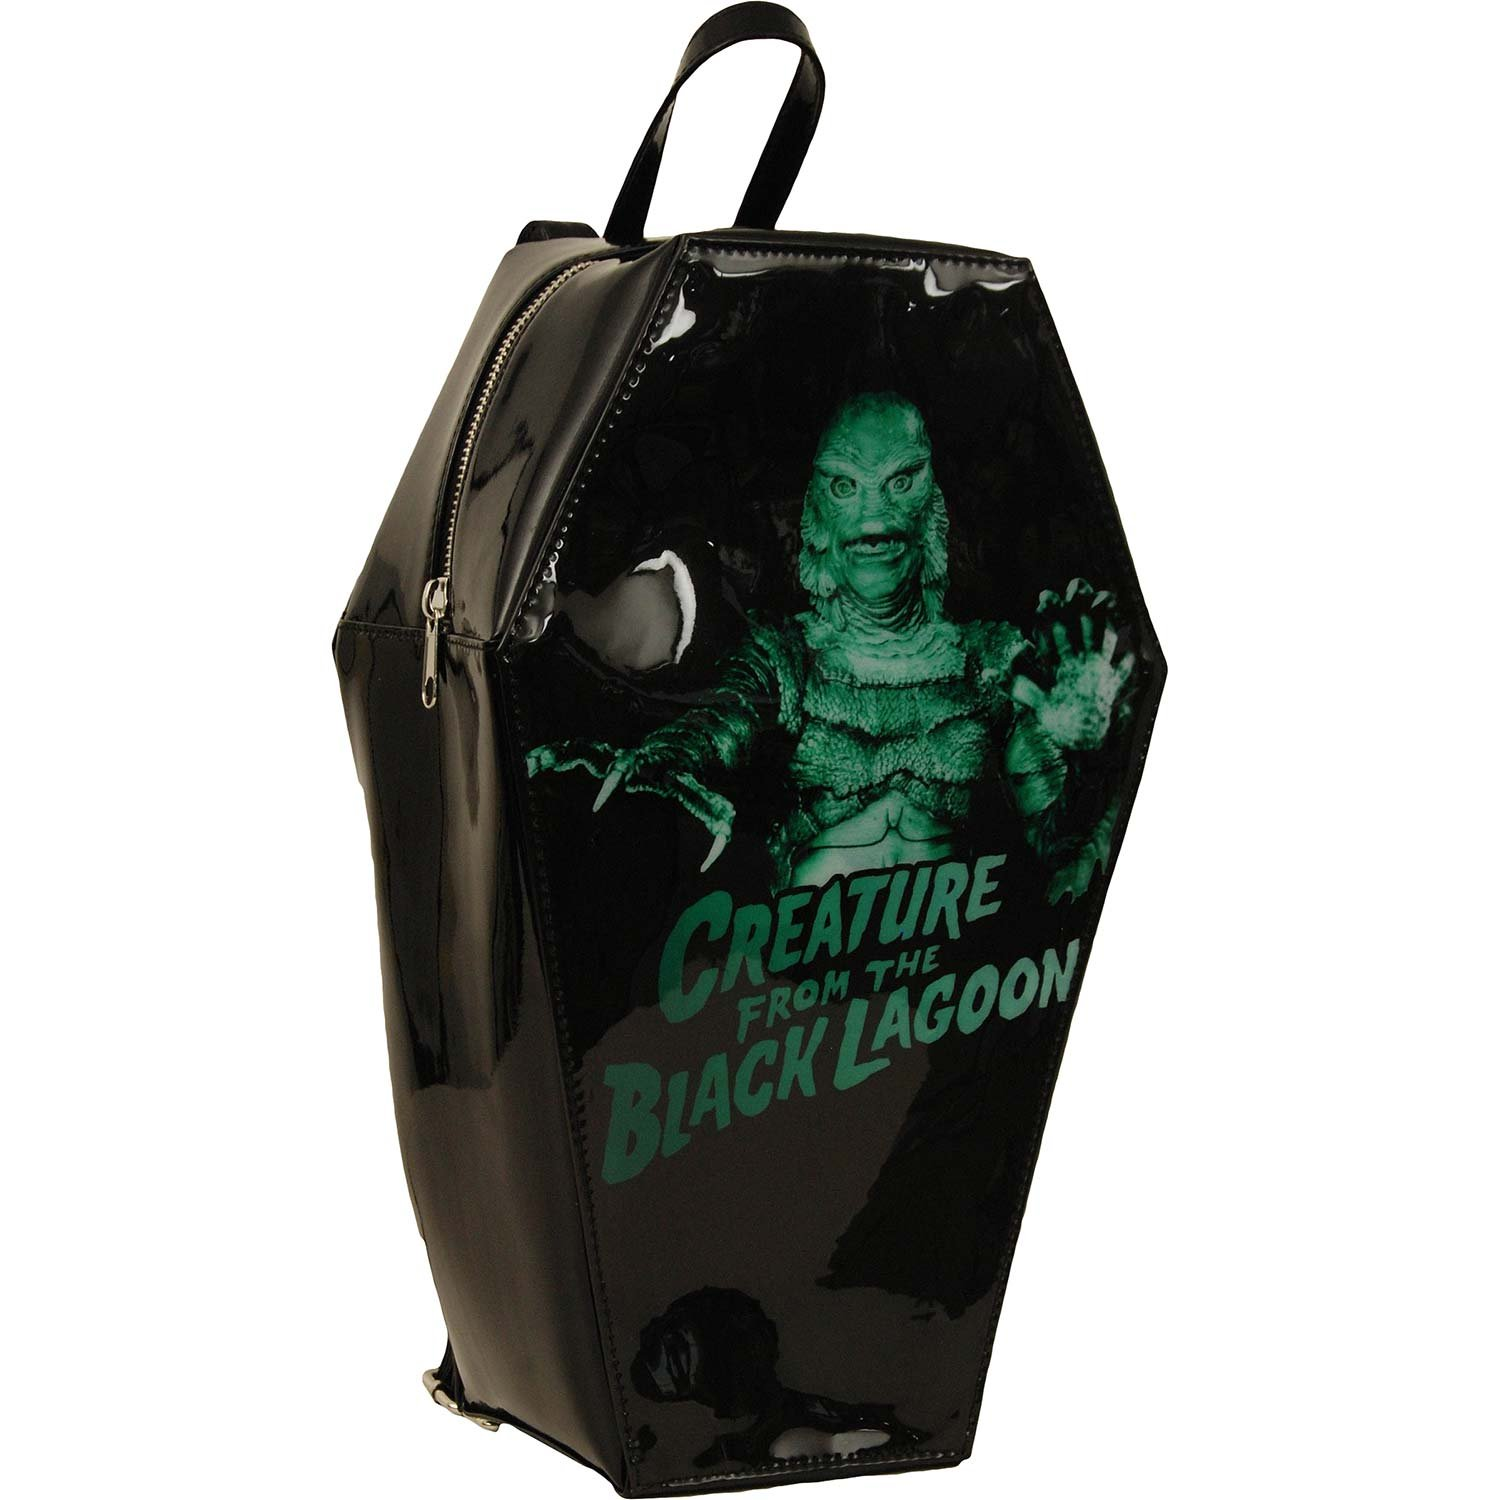 Creature From The Black Lagoon Creature Backpack Black